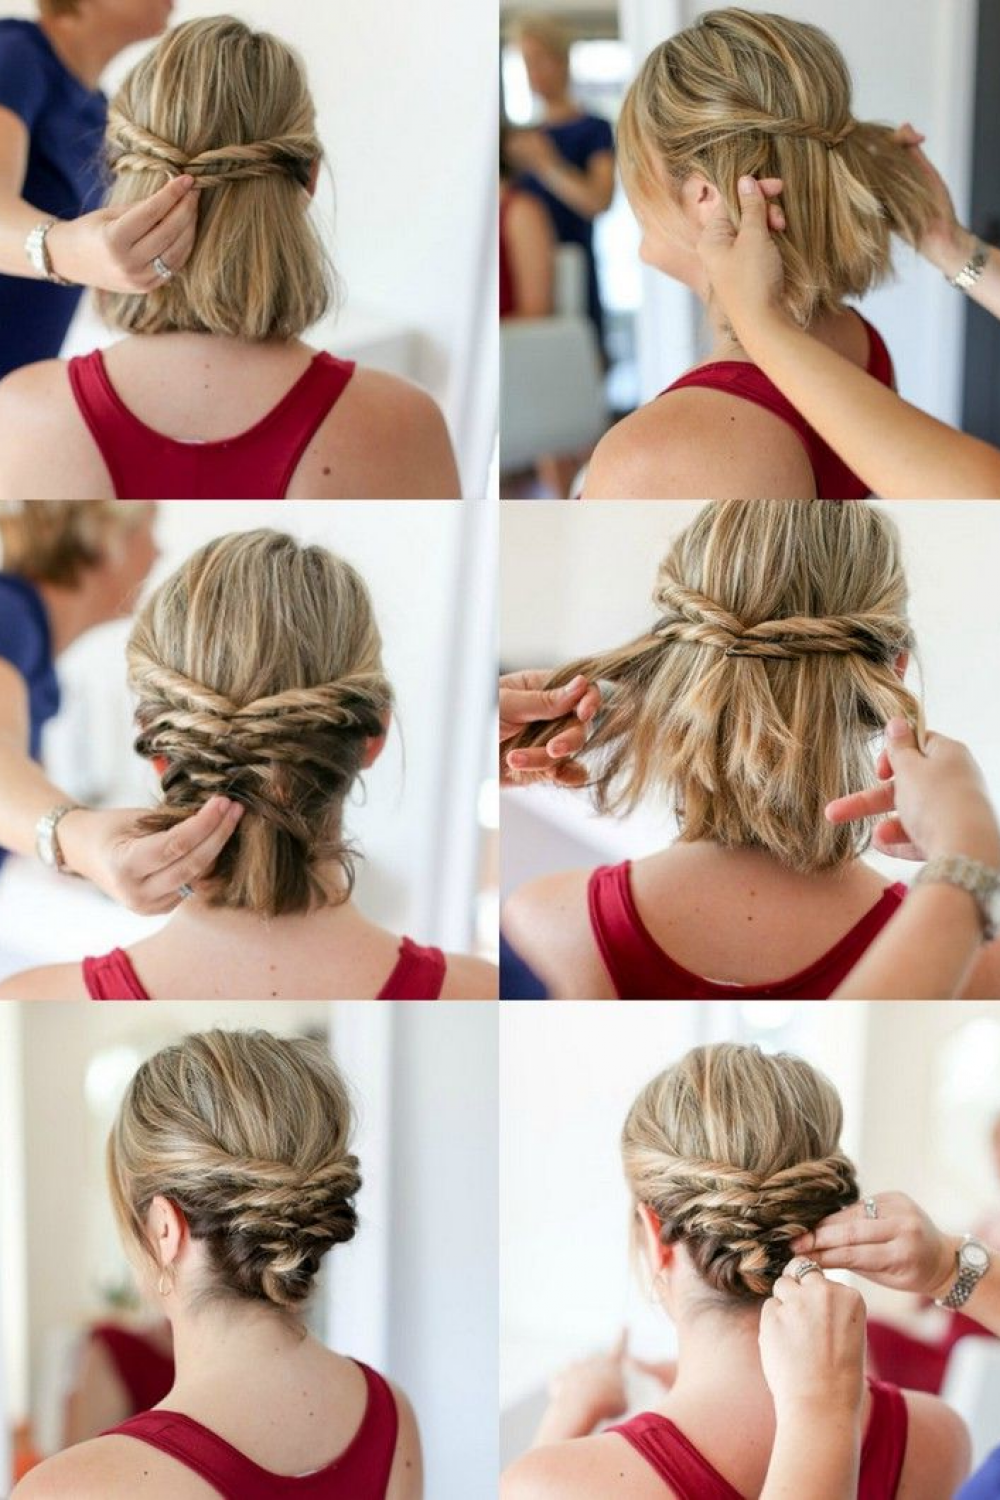 22 Amazing Braid Hairstyles Updo Designs Short Hair Updo Short Hair Styles For Round Faces Hair Lengths